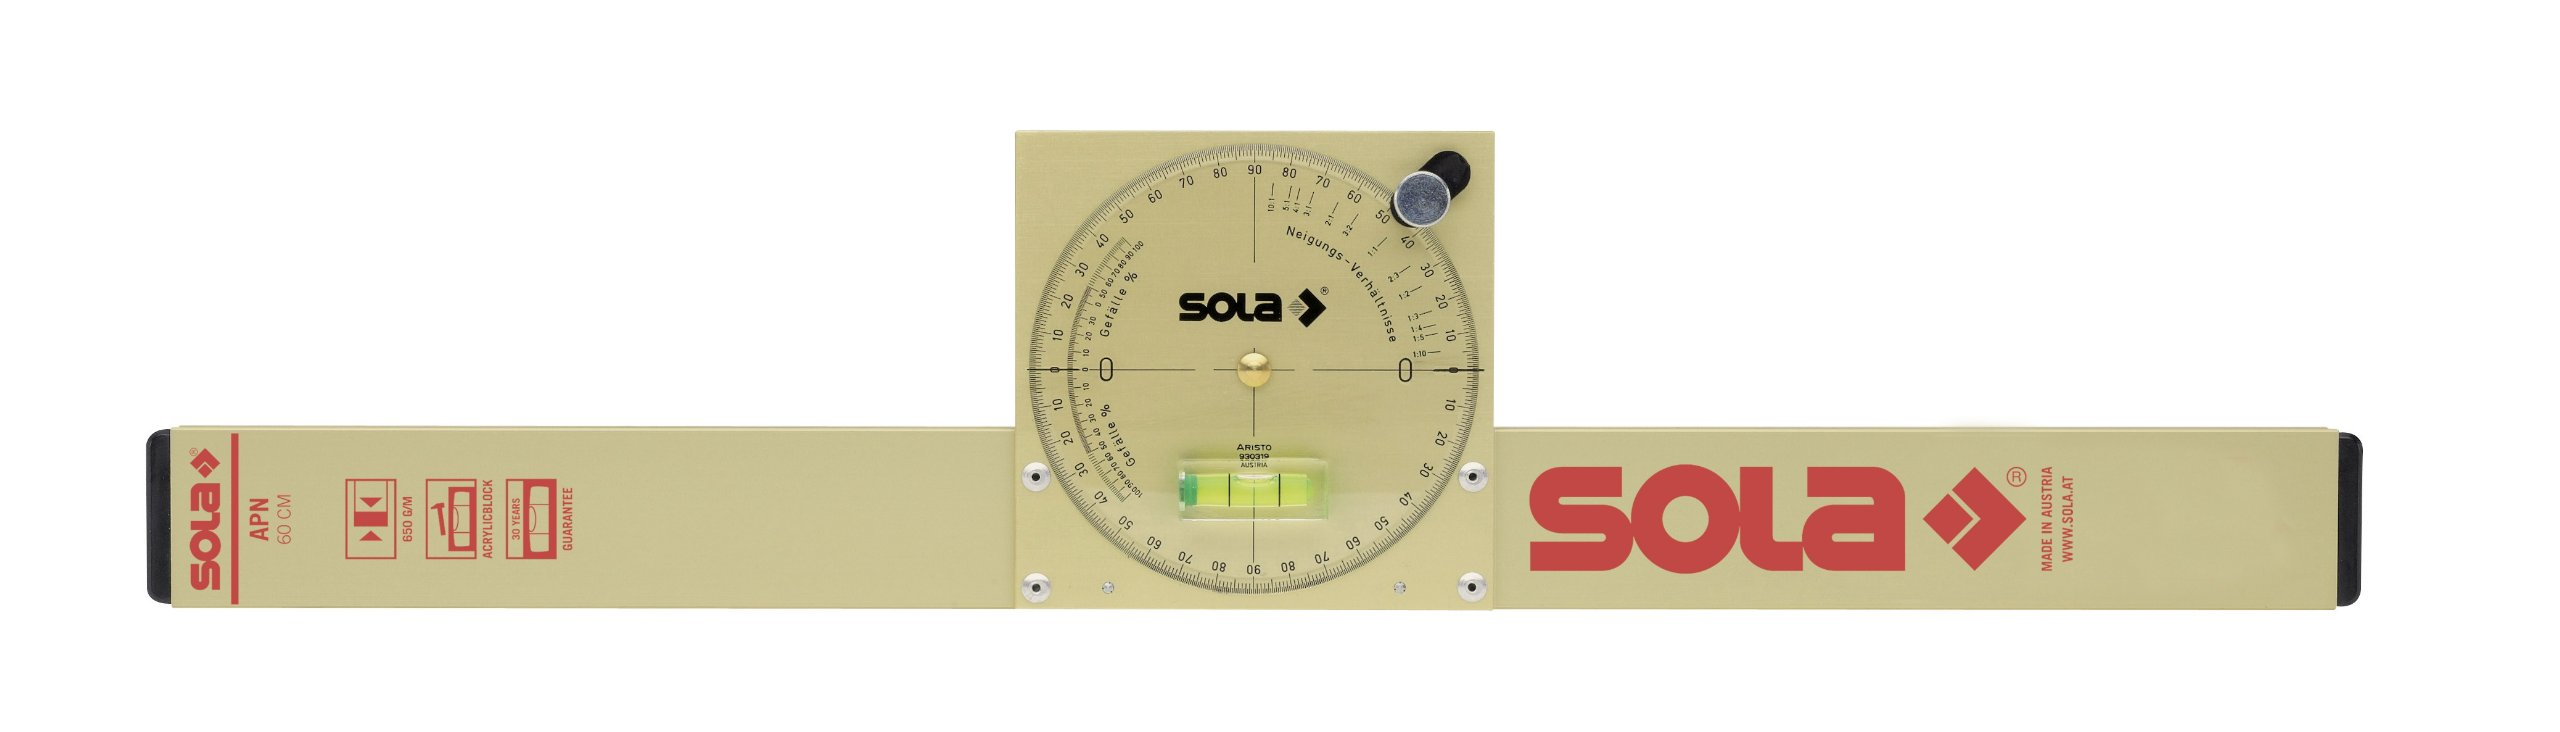 Sola Magnetic Analog Inclinometer w/Carry Bag - NAM 50 T